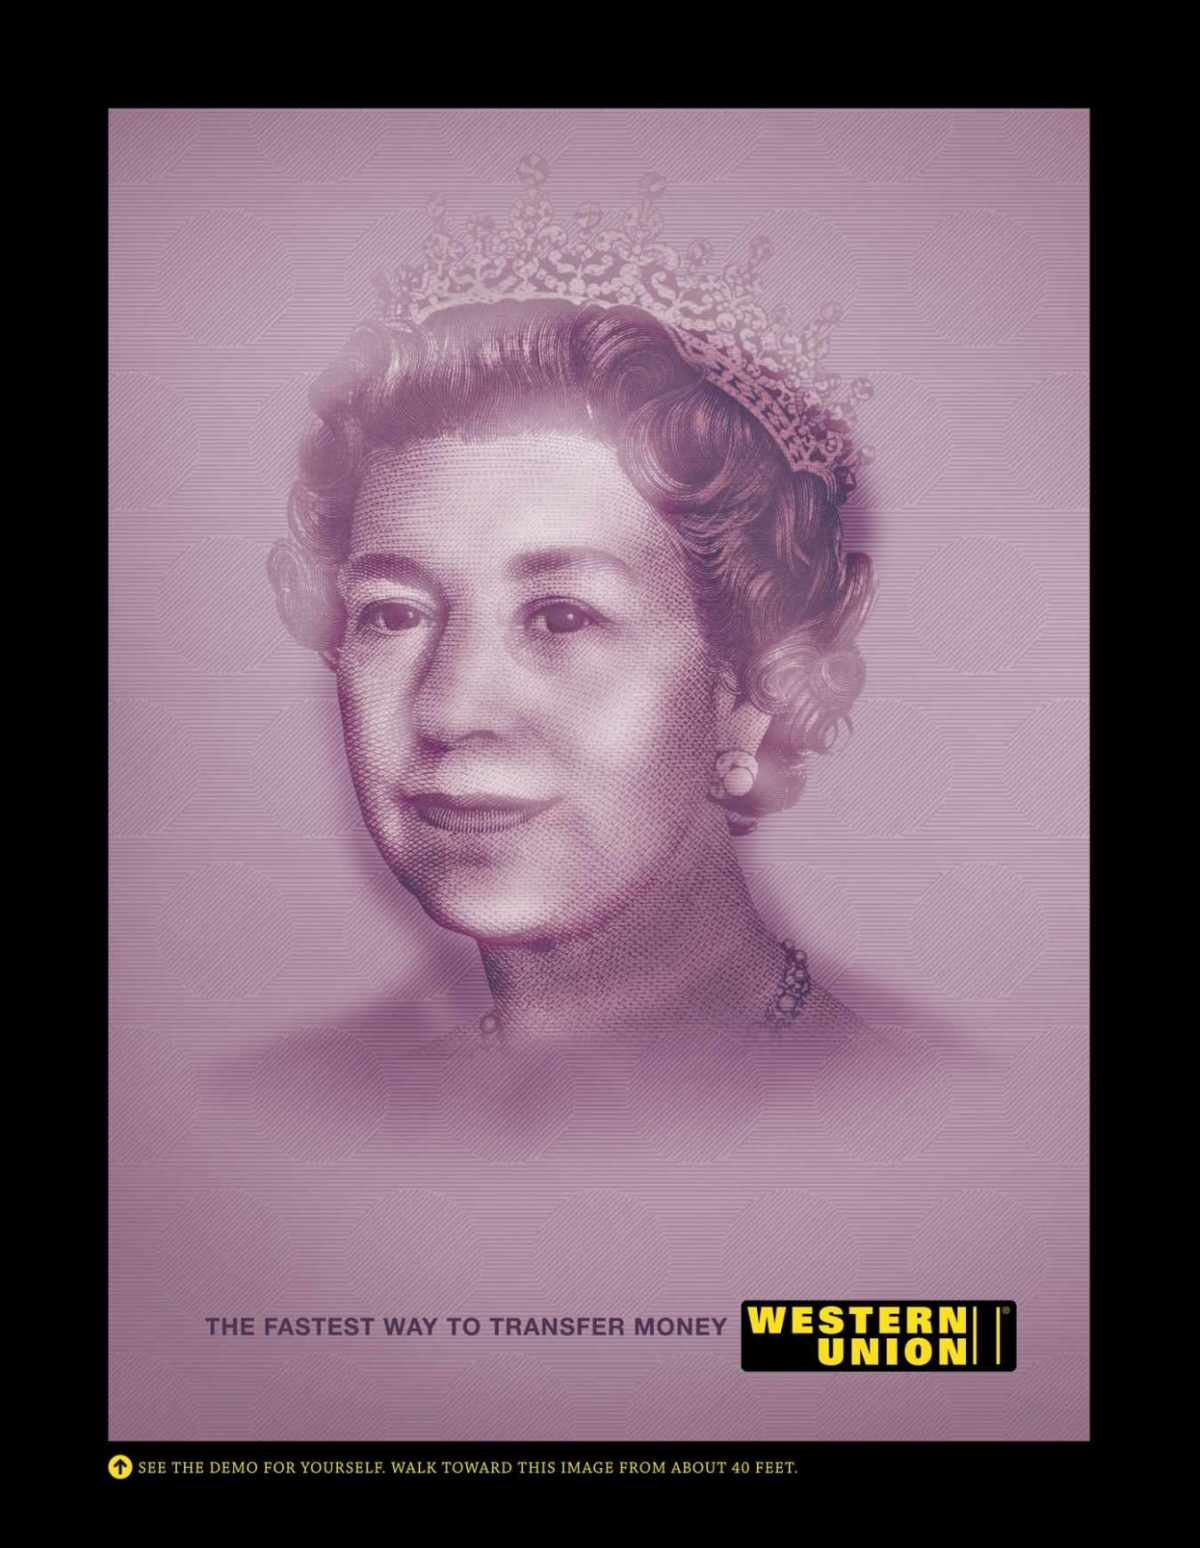 western_union_money_transfer_-_western_union_demo_posters_-_3_of_3_-_queen_mao_-_mccann_worldgroup_india_-_mumbai_aotw